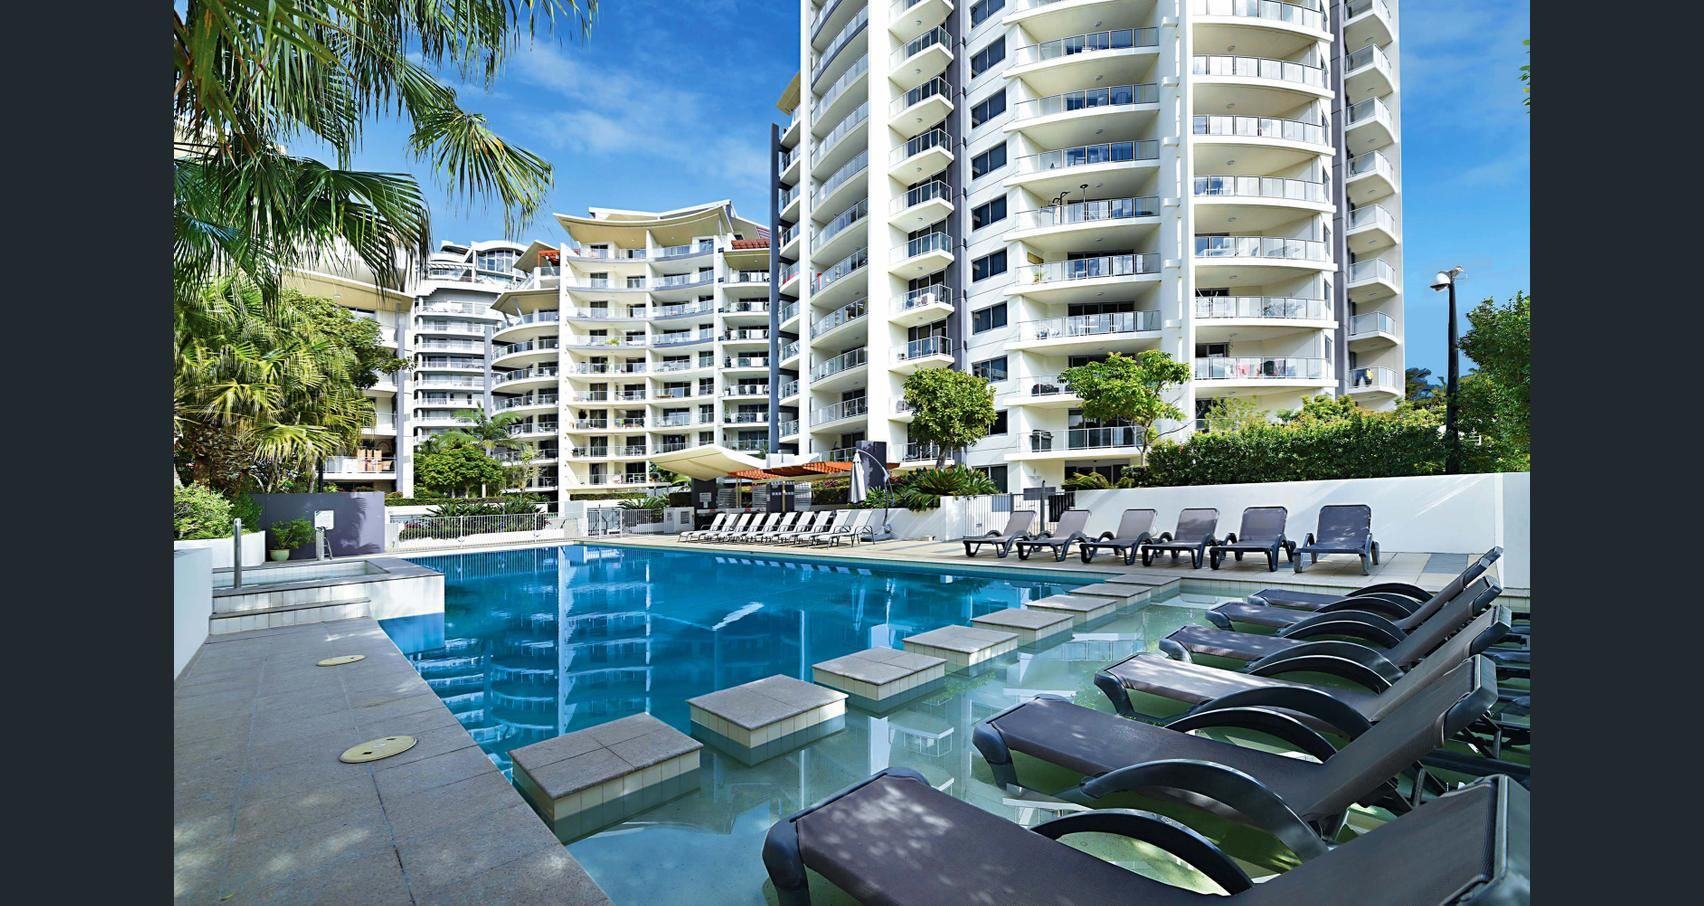 55/21 CYPRESS AVE, Surfers Paradise QLD 4217, Image 0